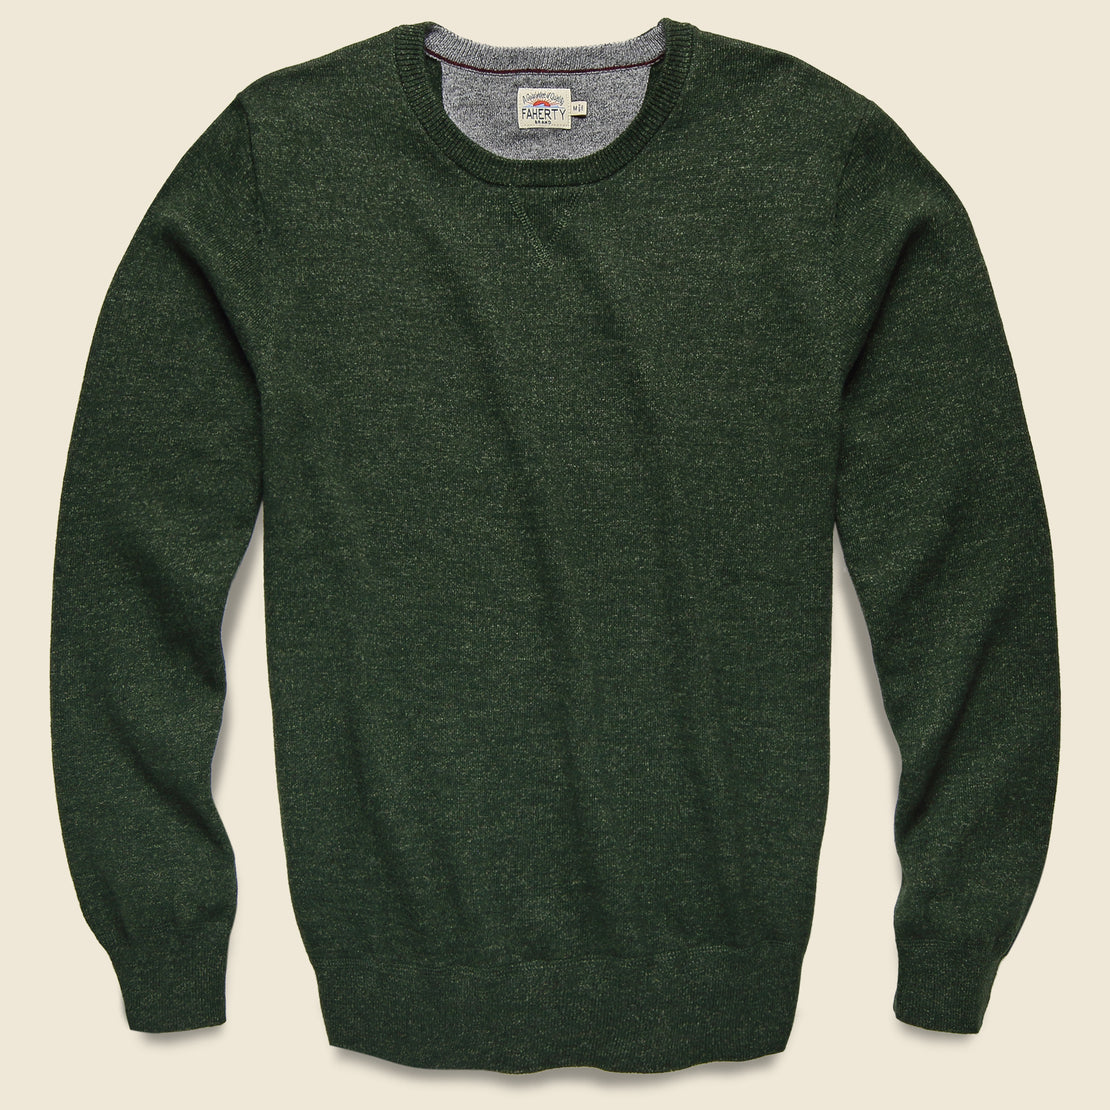 Faherty Sconset Crew Sweater - Spruce Heather